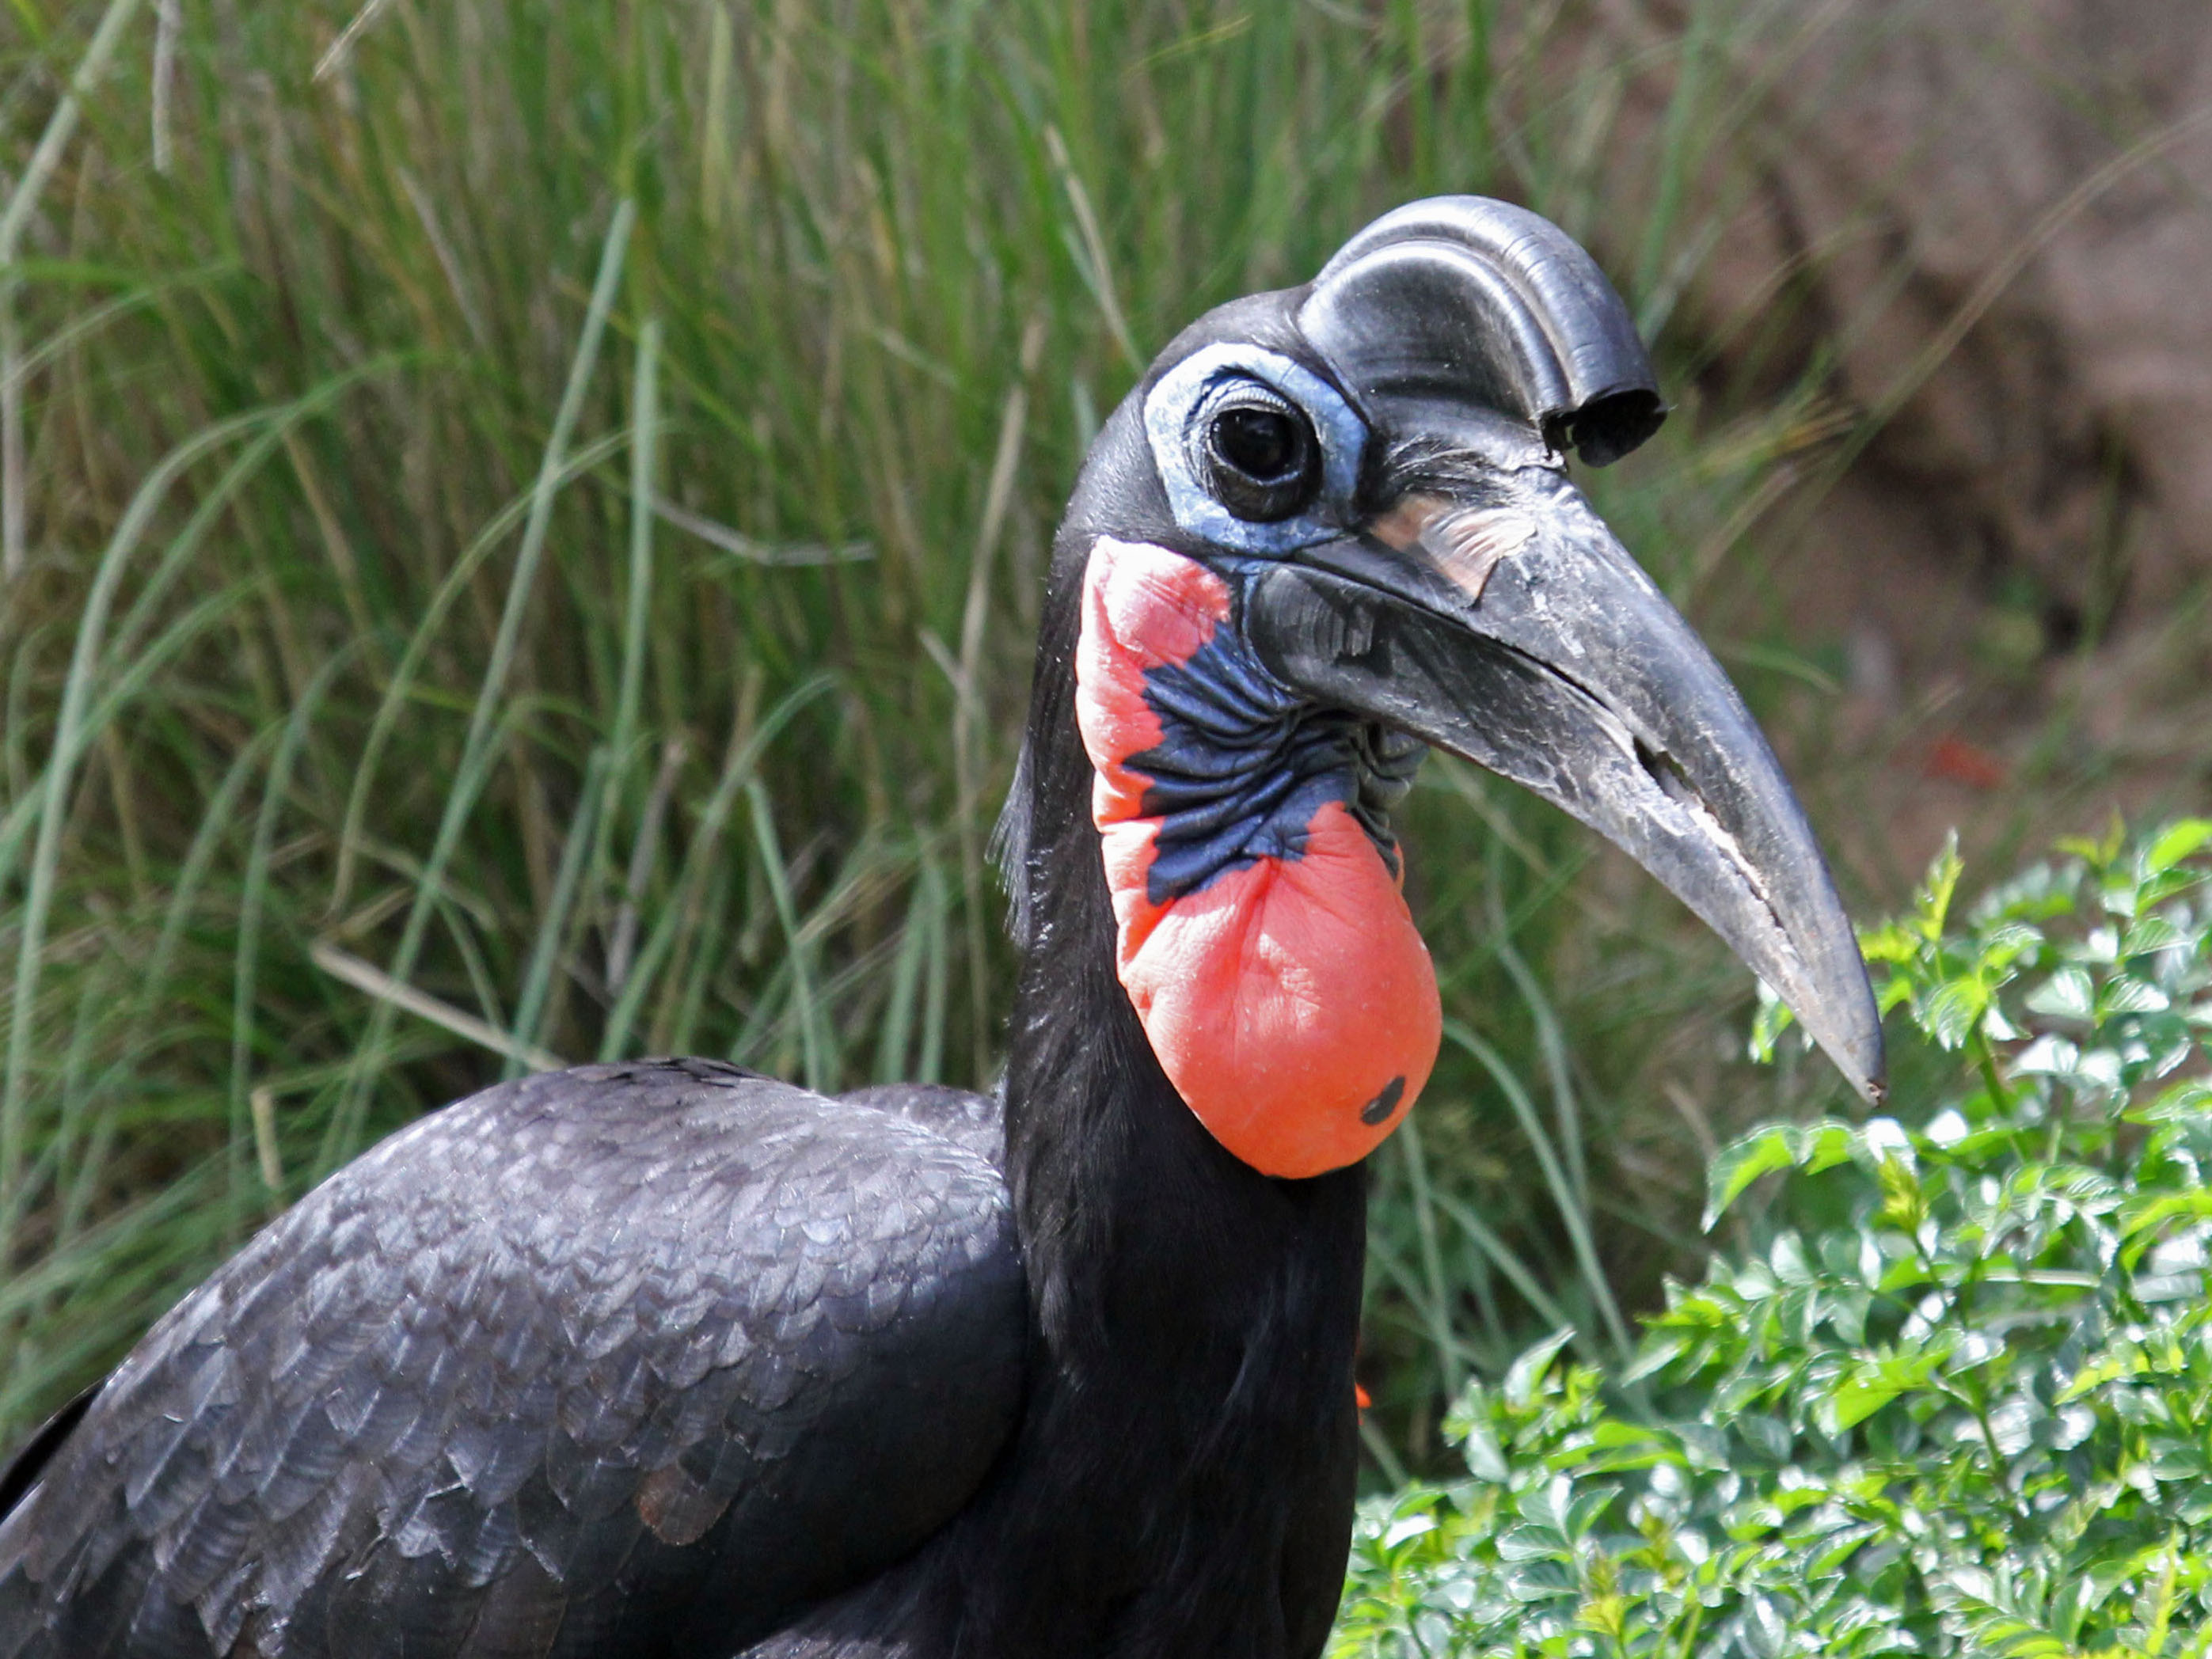 File:Abyssinian Ground Hornbill RWD3.jpg - Wikimedia Commons